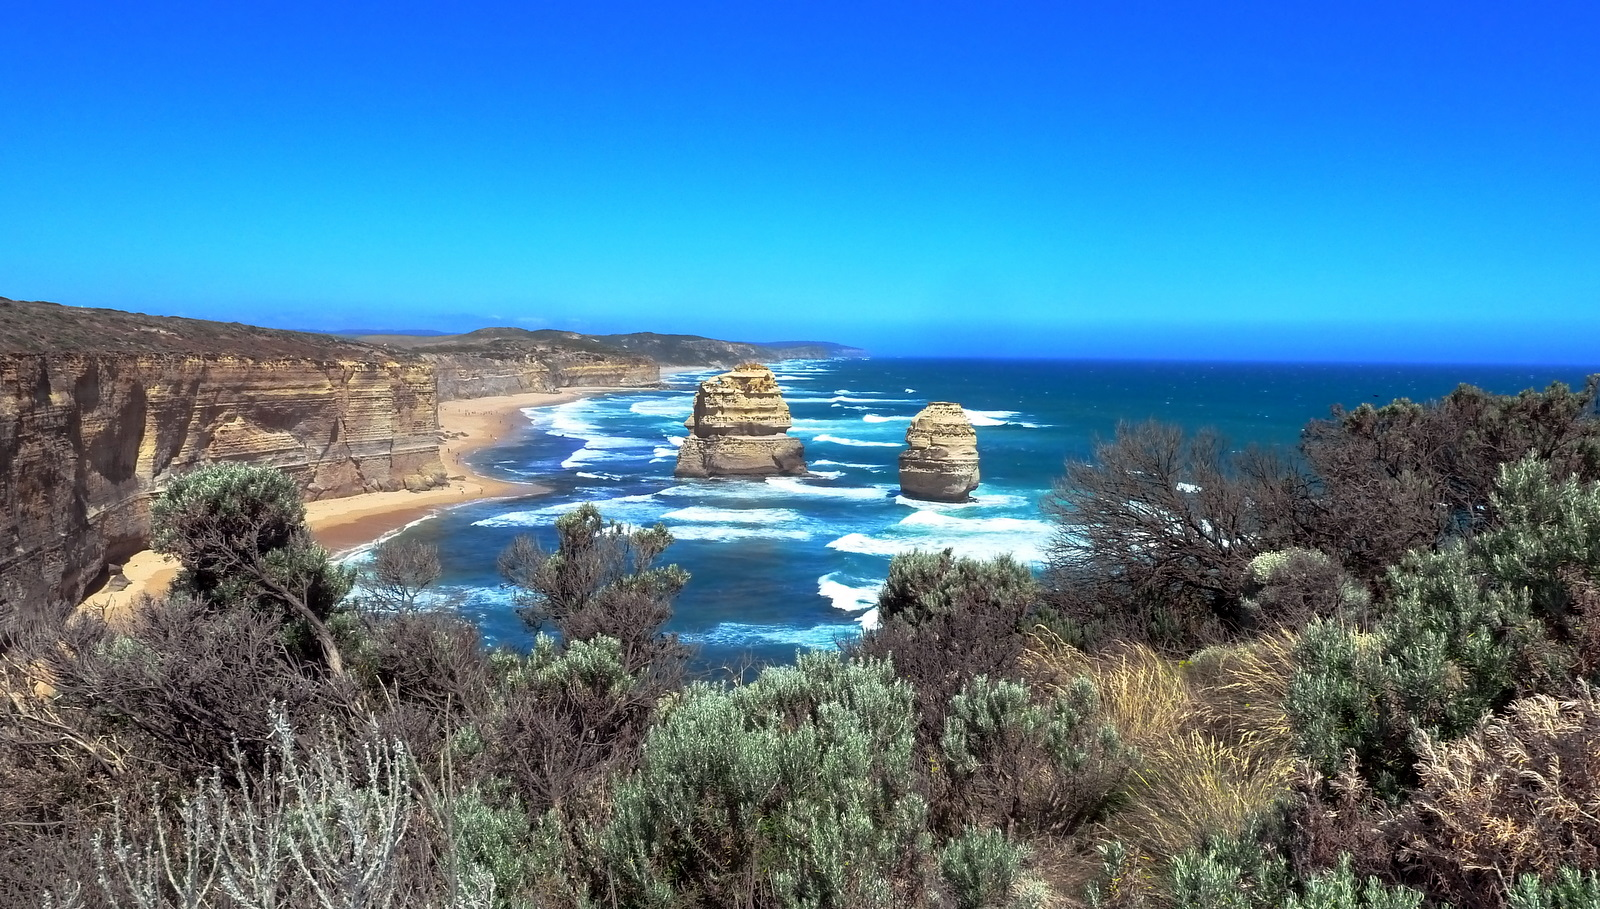 2-apostles-foliage-in-foreground